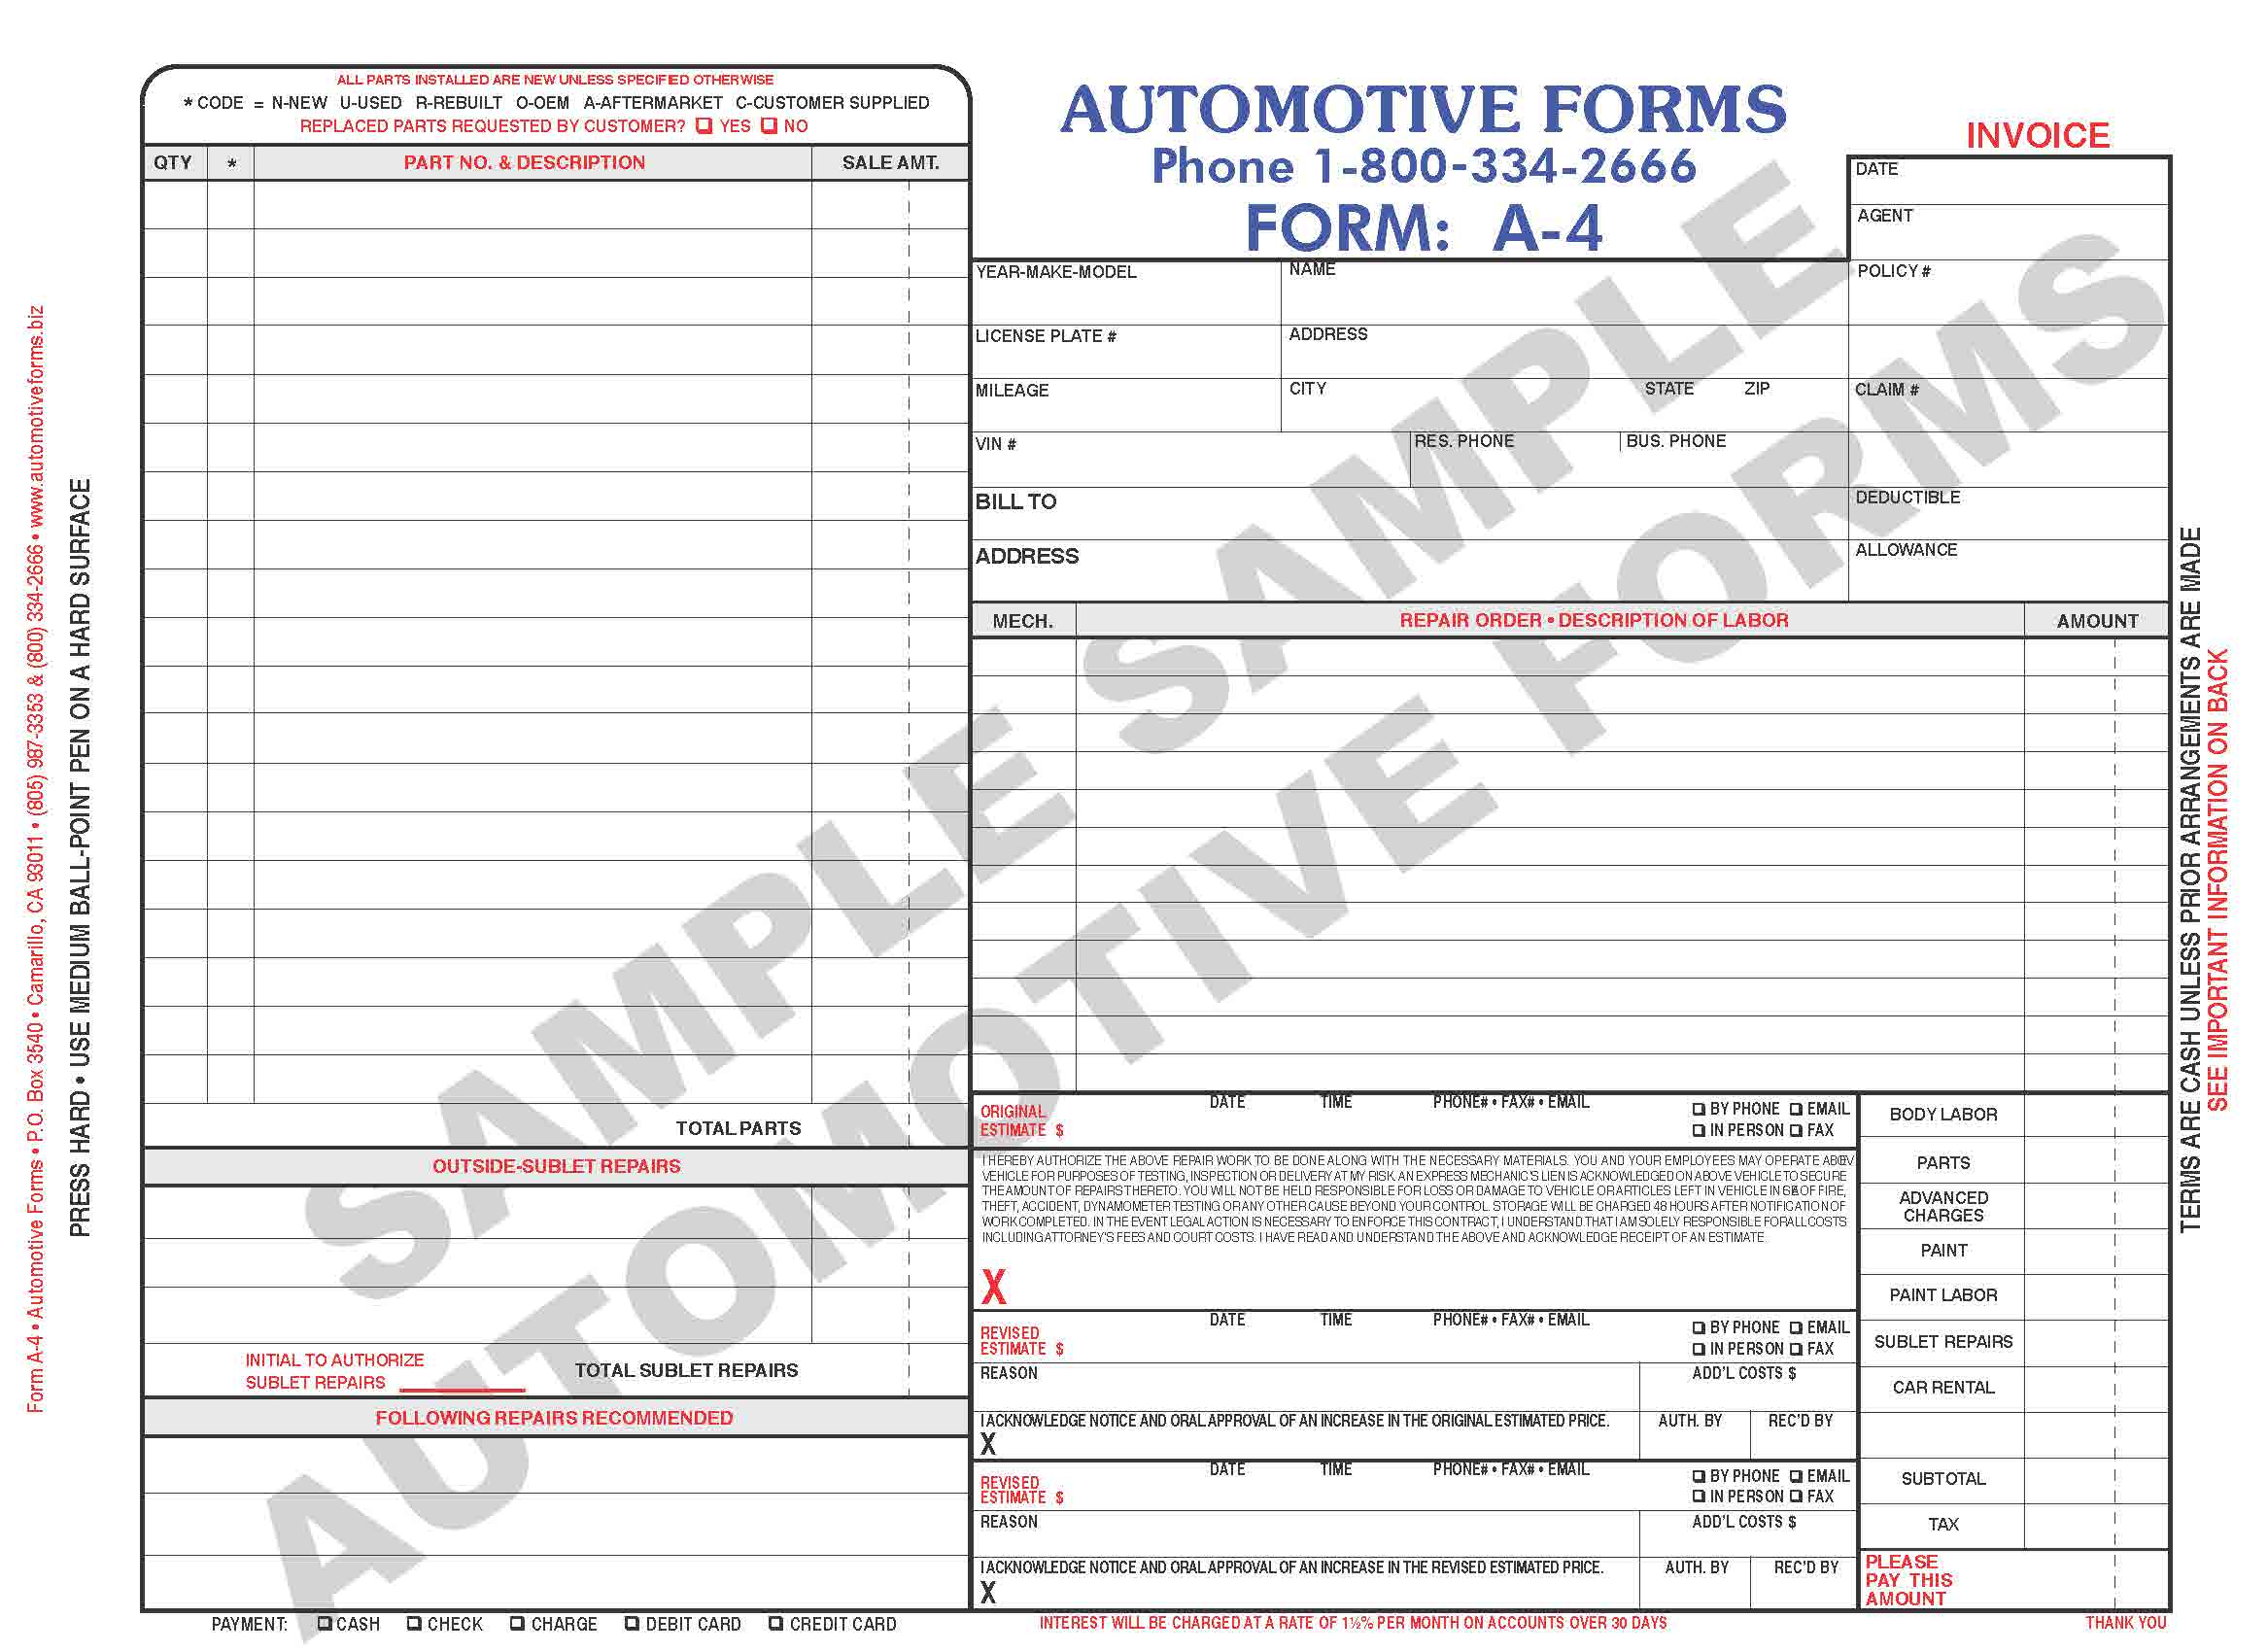 Da Form Hand Receipt Download Auto Body Receipt Template  Rabitahnet Jeep Patriot Invoice Price Excel with Tax Exempt Receipt Pdf Shop Invoice Invoice Templates Outlook Request Read Receipt Word